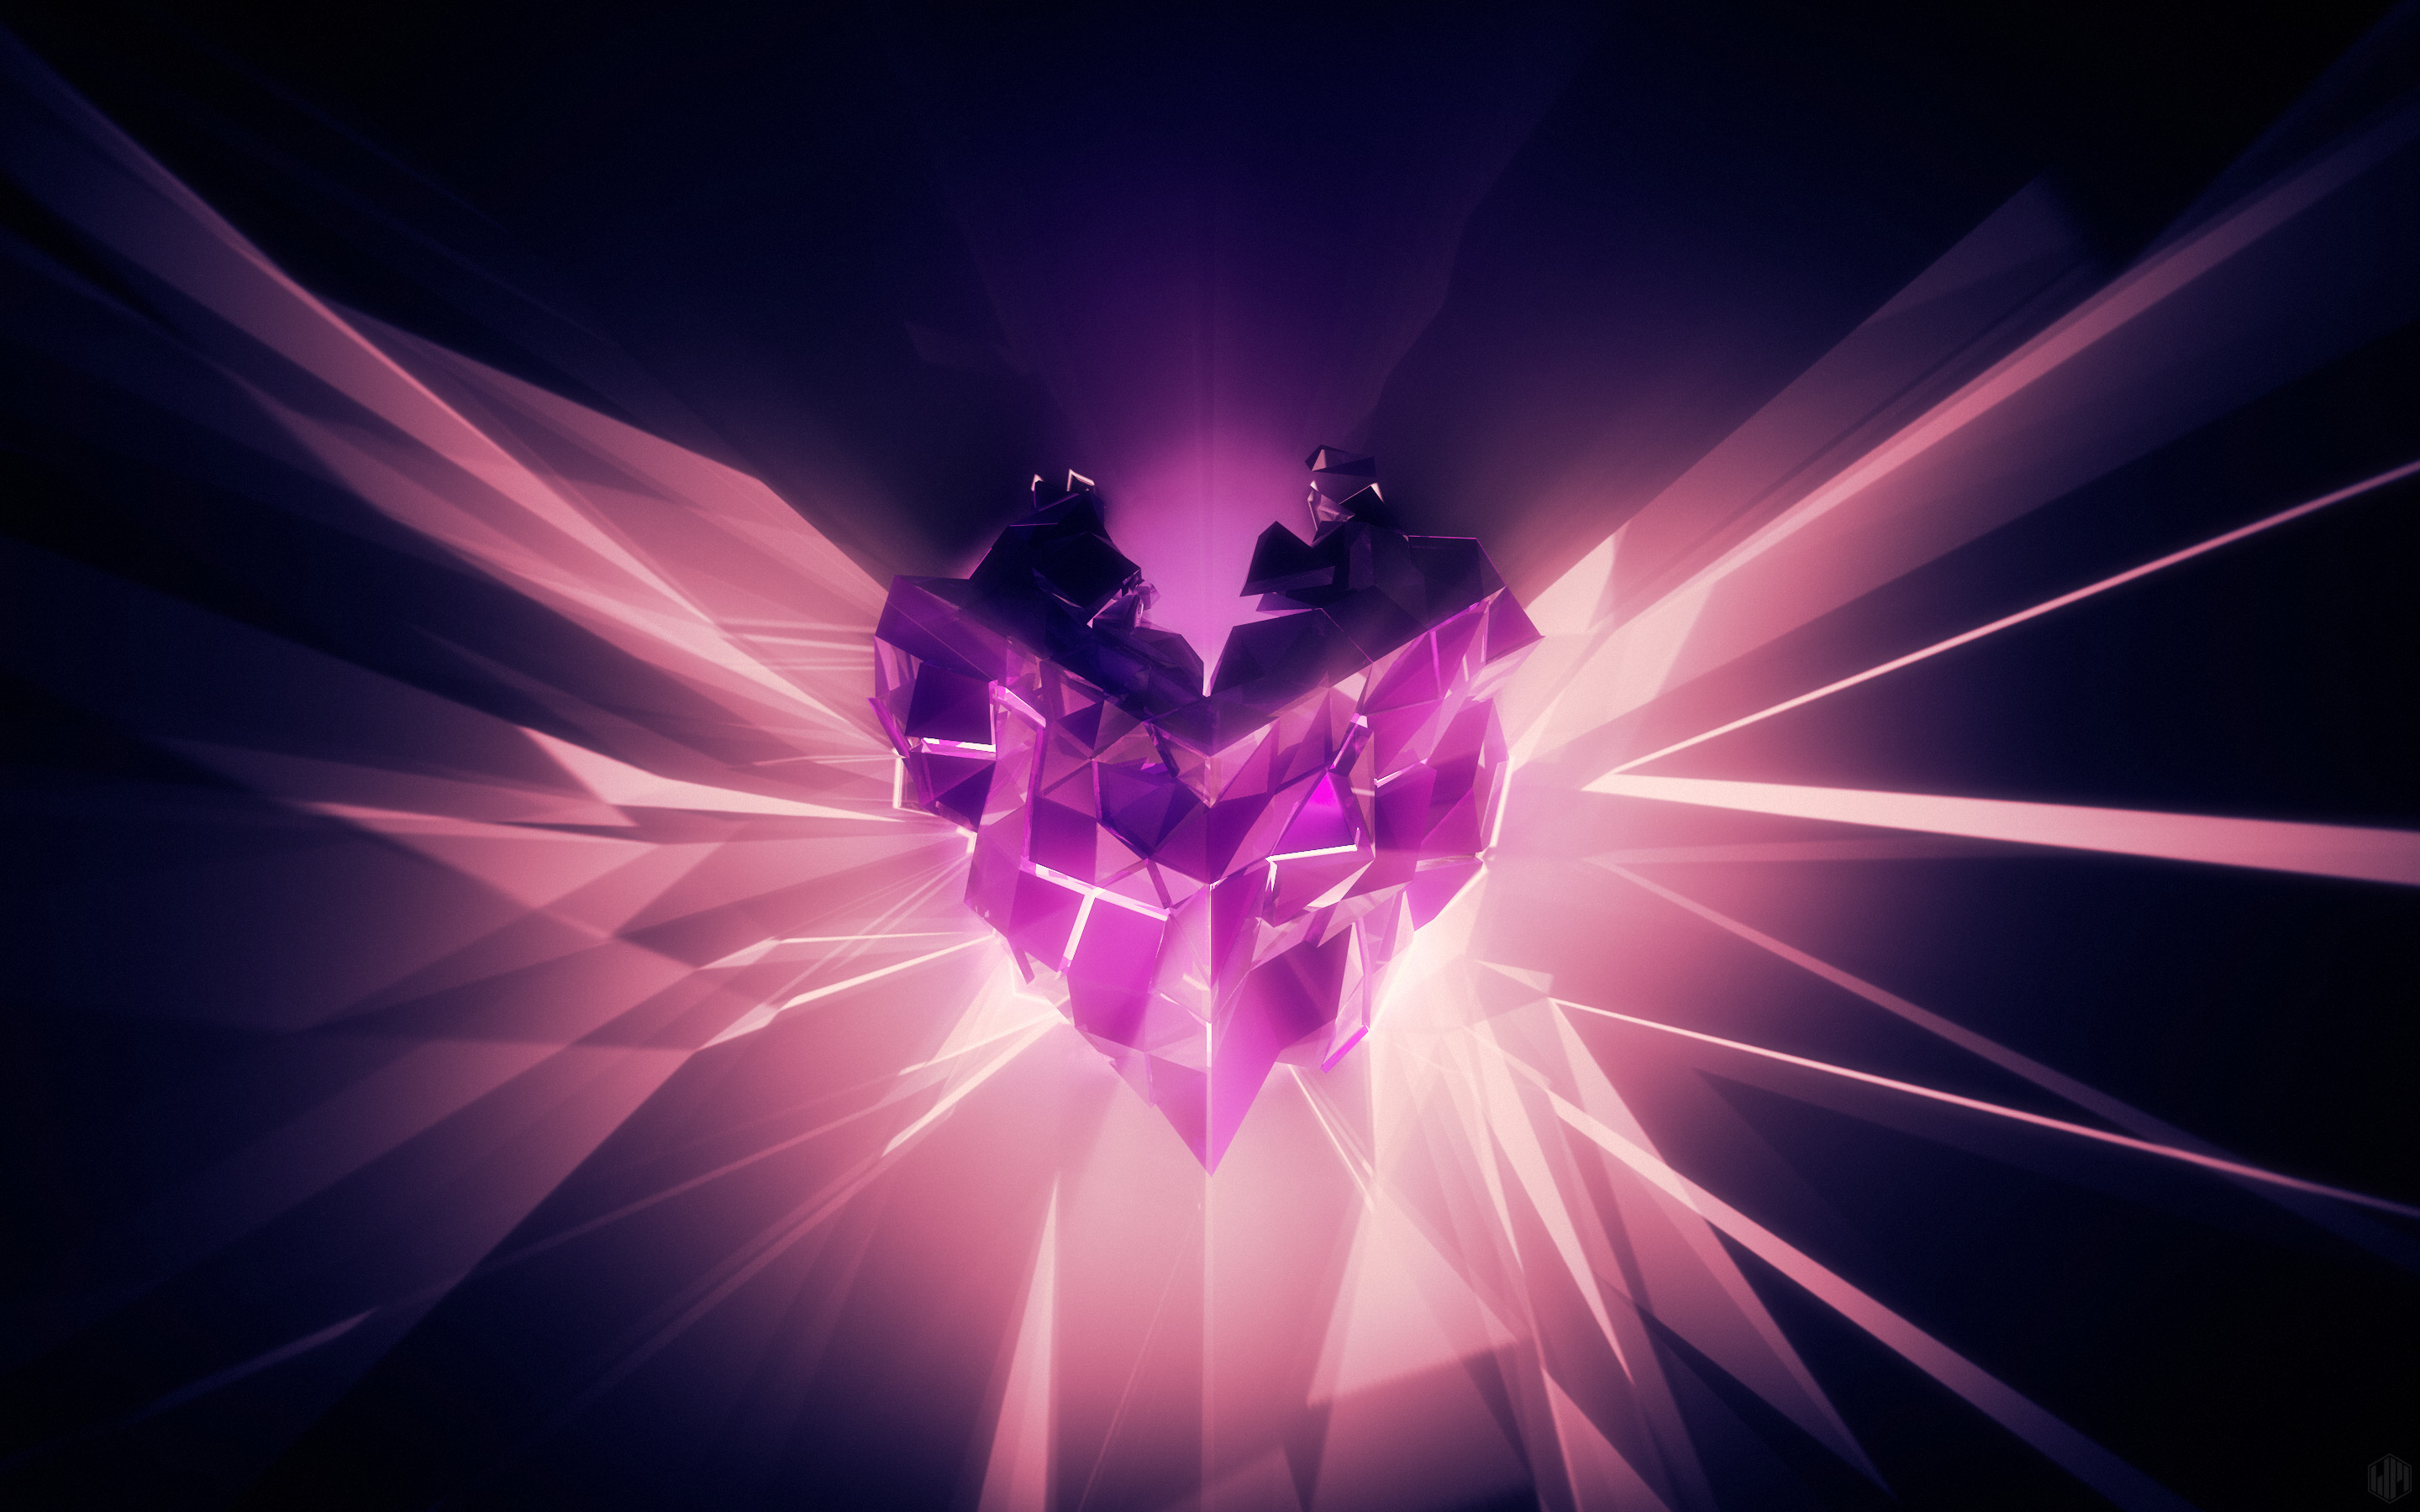 858450 beautiful purple hearts backgrounds 2880x1800 cell phone